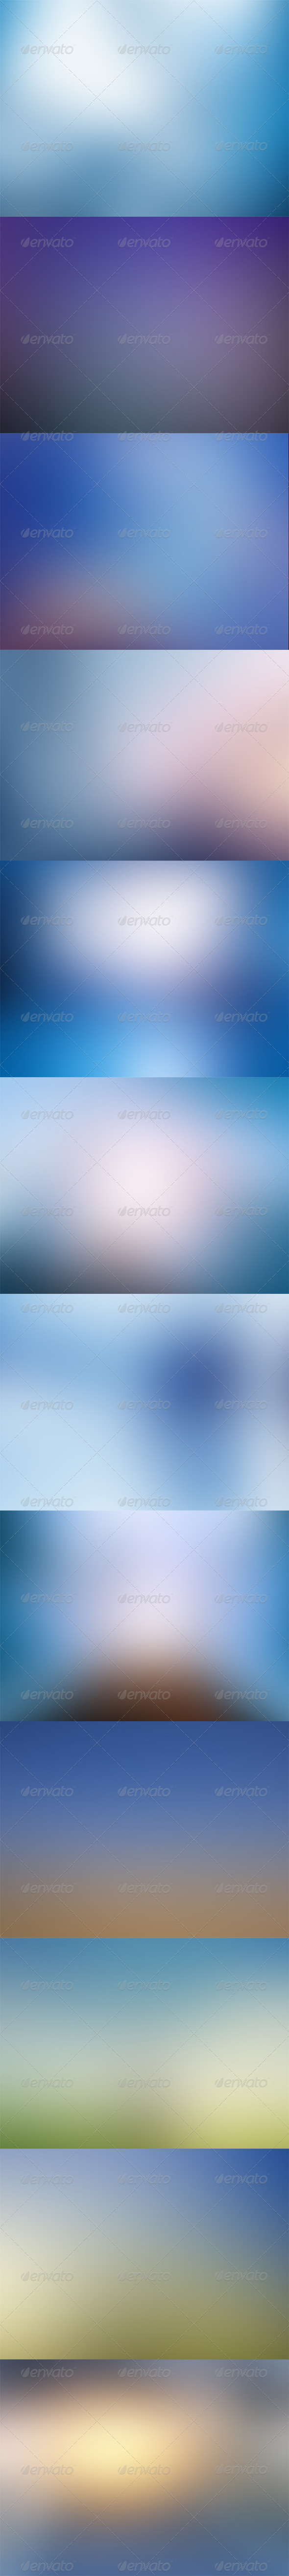 Blue Blurred Backgrounds